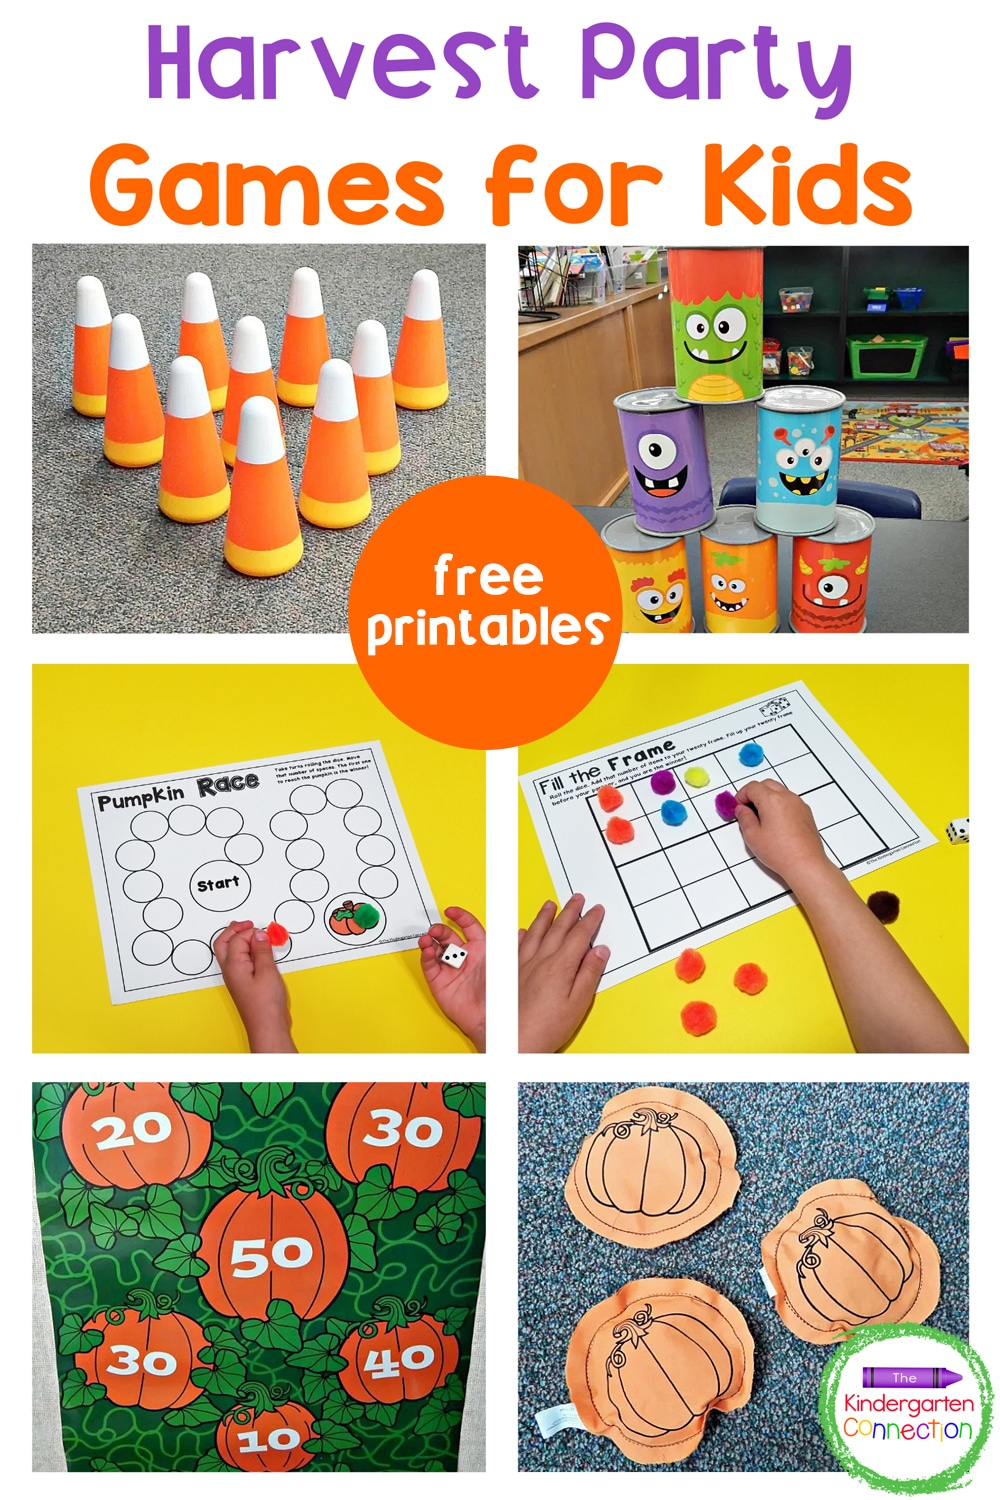 Have a blast celebrating this fall with these 5 fun harvest party games for kids! They're sure to be a hit at home or in the classroom!